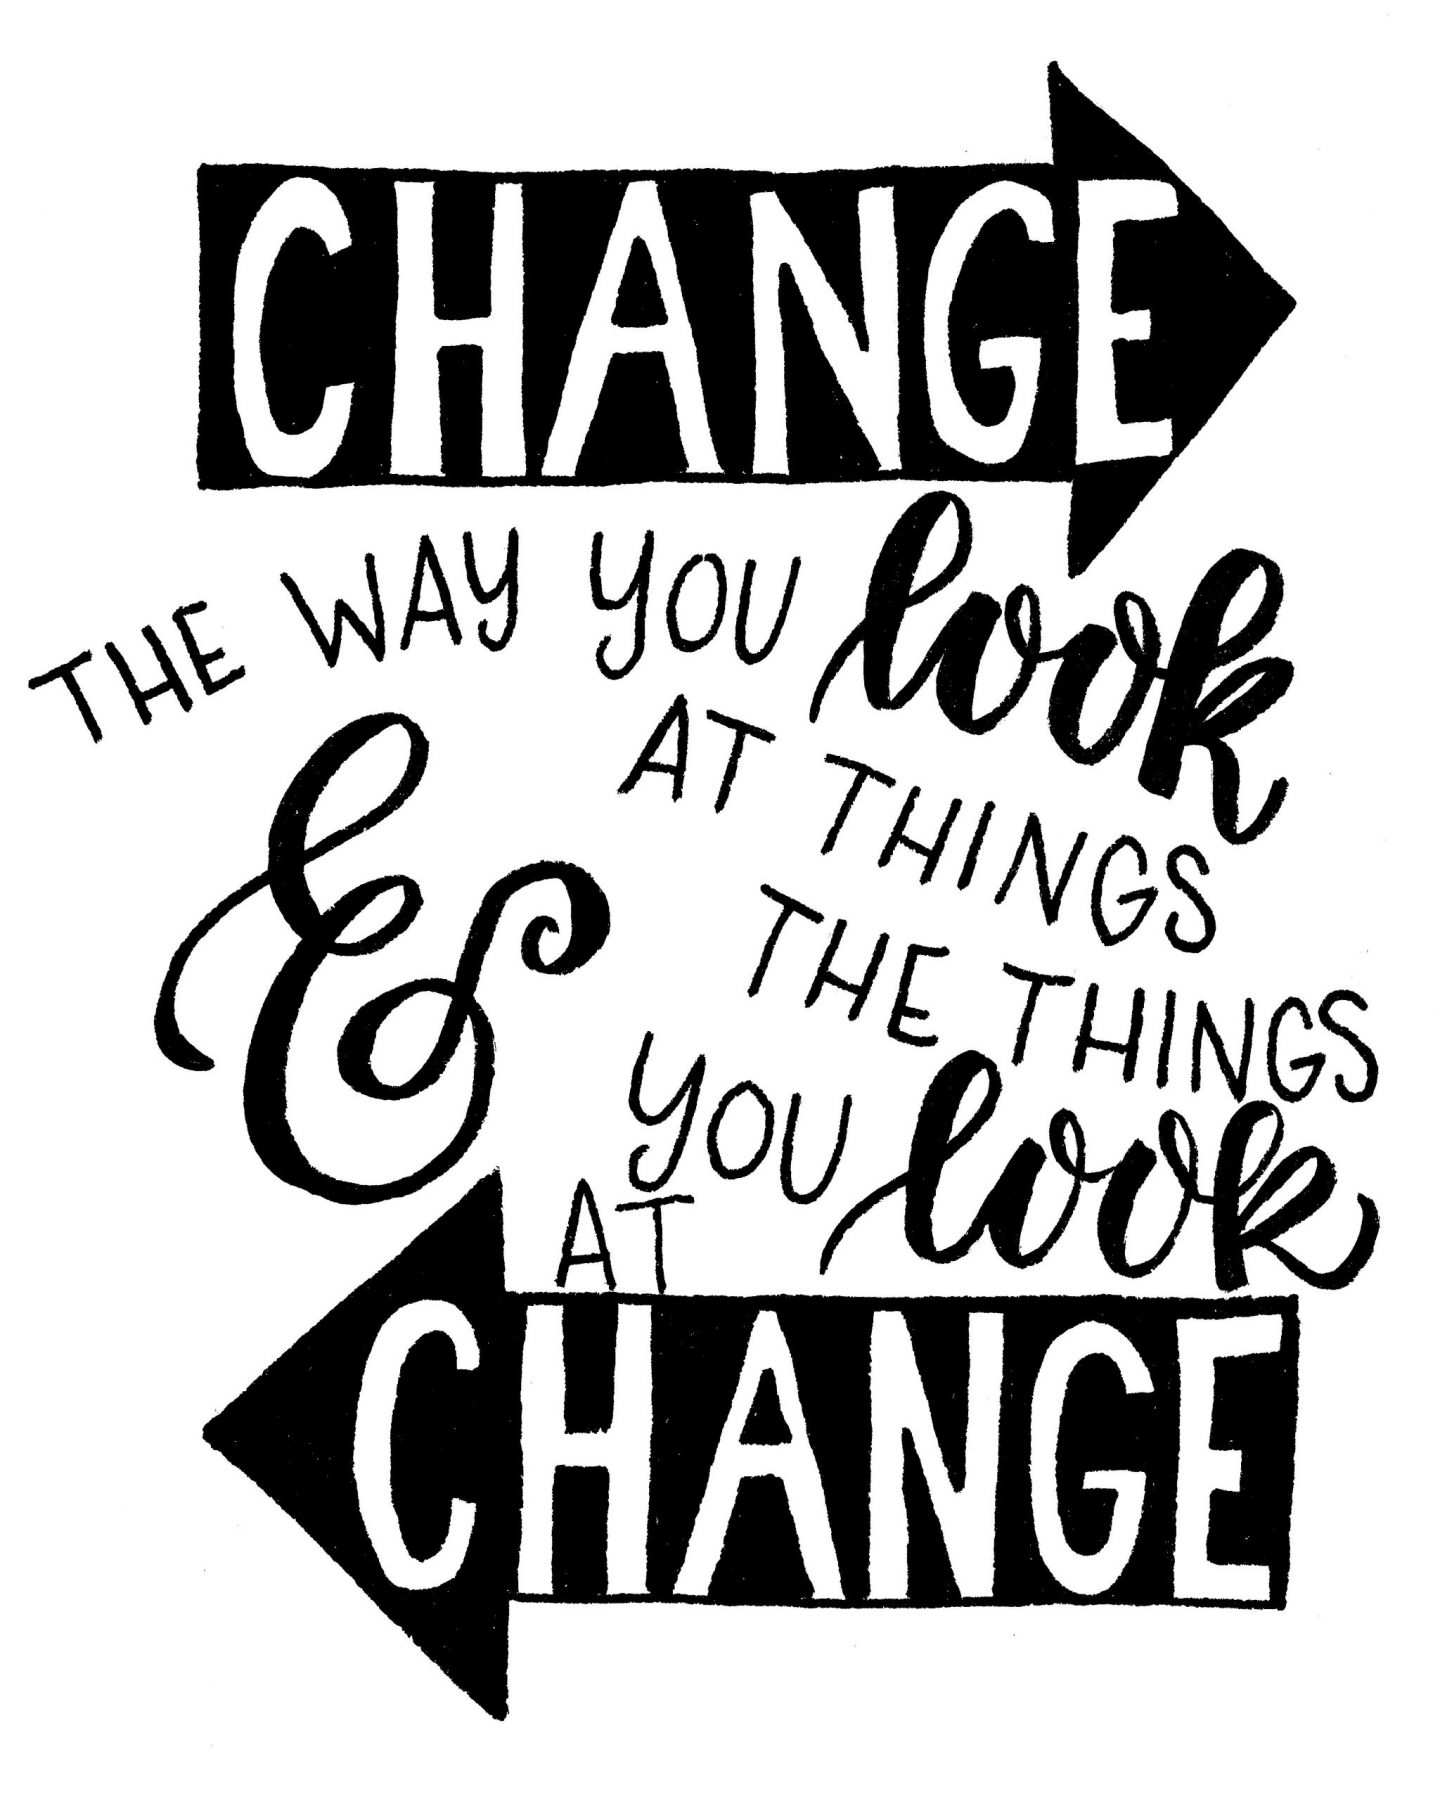 Inspirational quote about change with handlettering by Amy Latta. Come see more in 20 Hand Lettered Quotes, Big SMILES & Fun Finds! #inspirationalquote #handlettering #amylatta #change